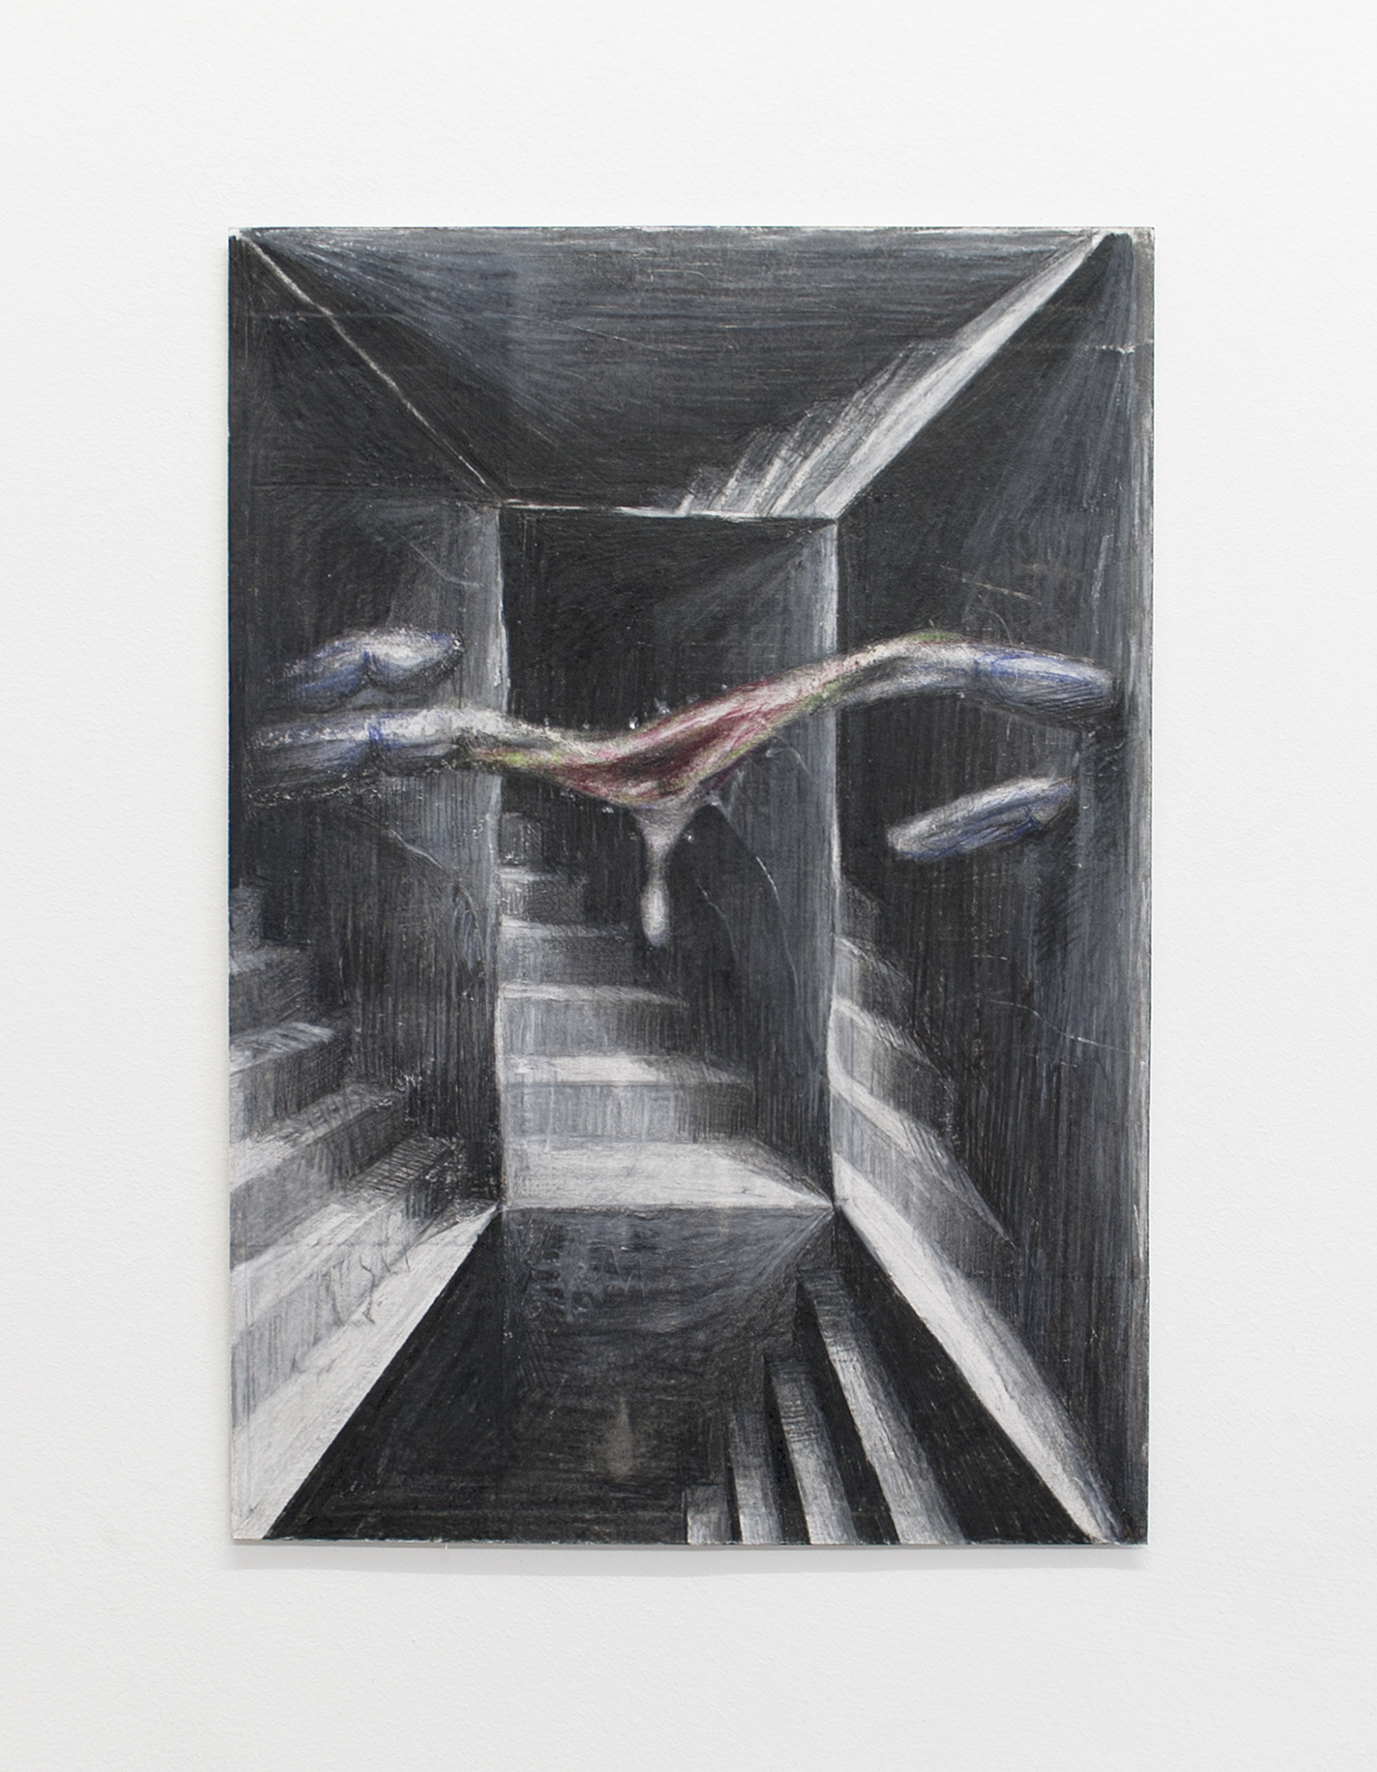 Stairway to Melon, coloured pencil on paper, 2017